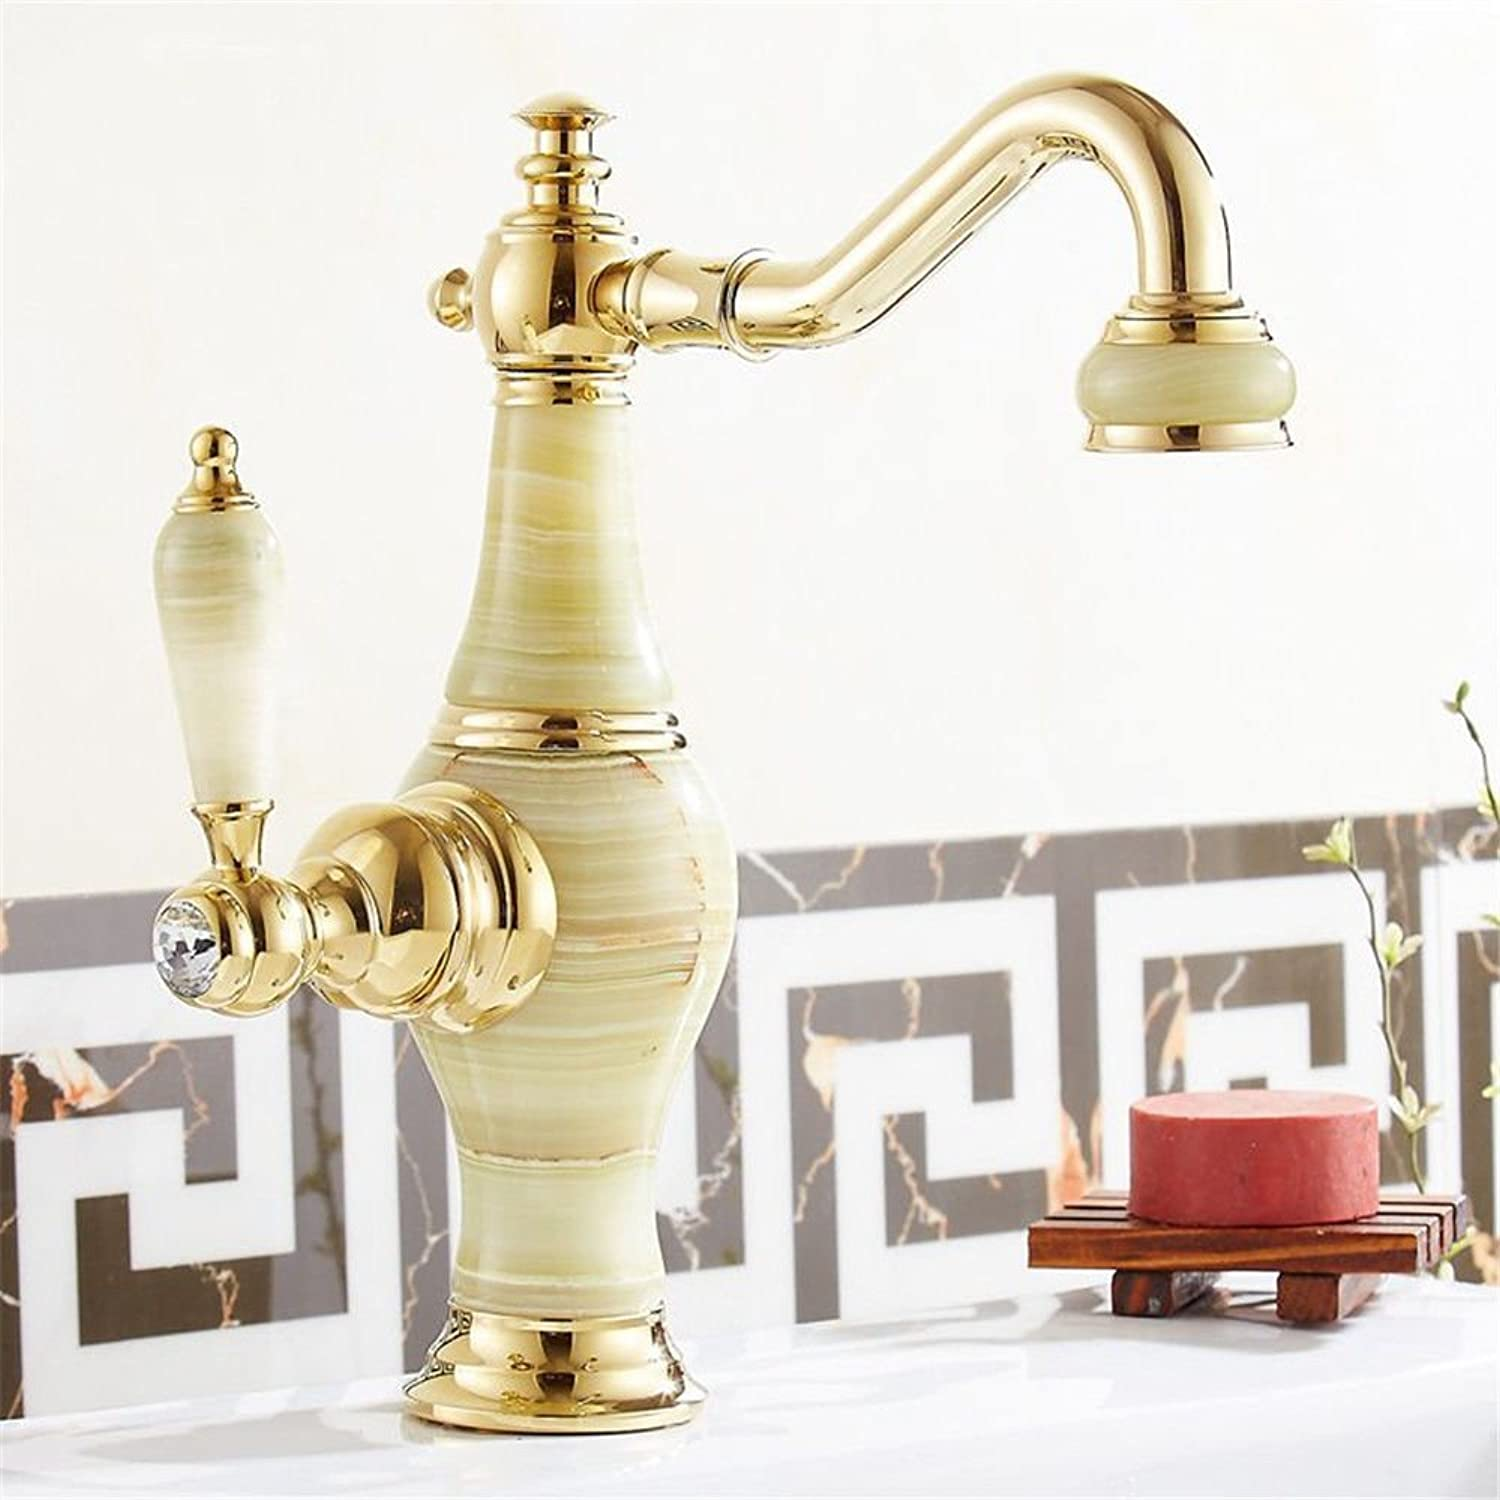 Lpophy Bathroom Sink Mixer Taps Faucet Bath Waterfall Cold and Hot Water Tap for Washroom Bathroom and Kitchen Hot and Cold pink gold Single Hole A